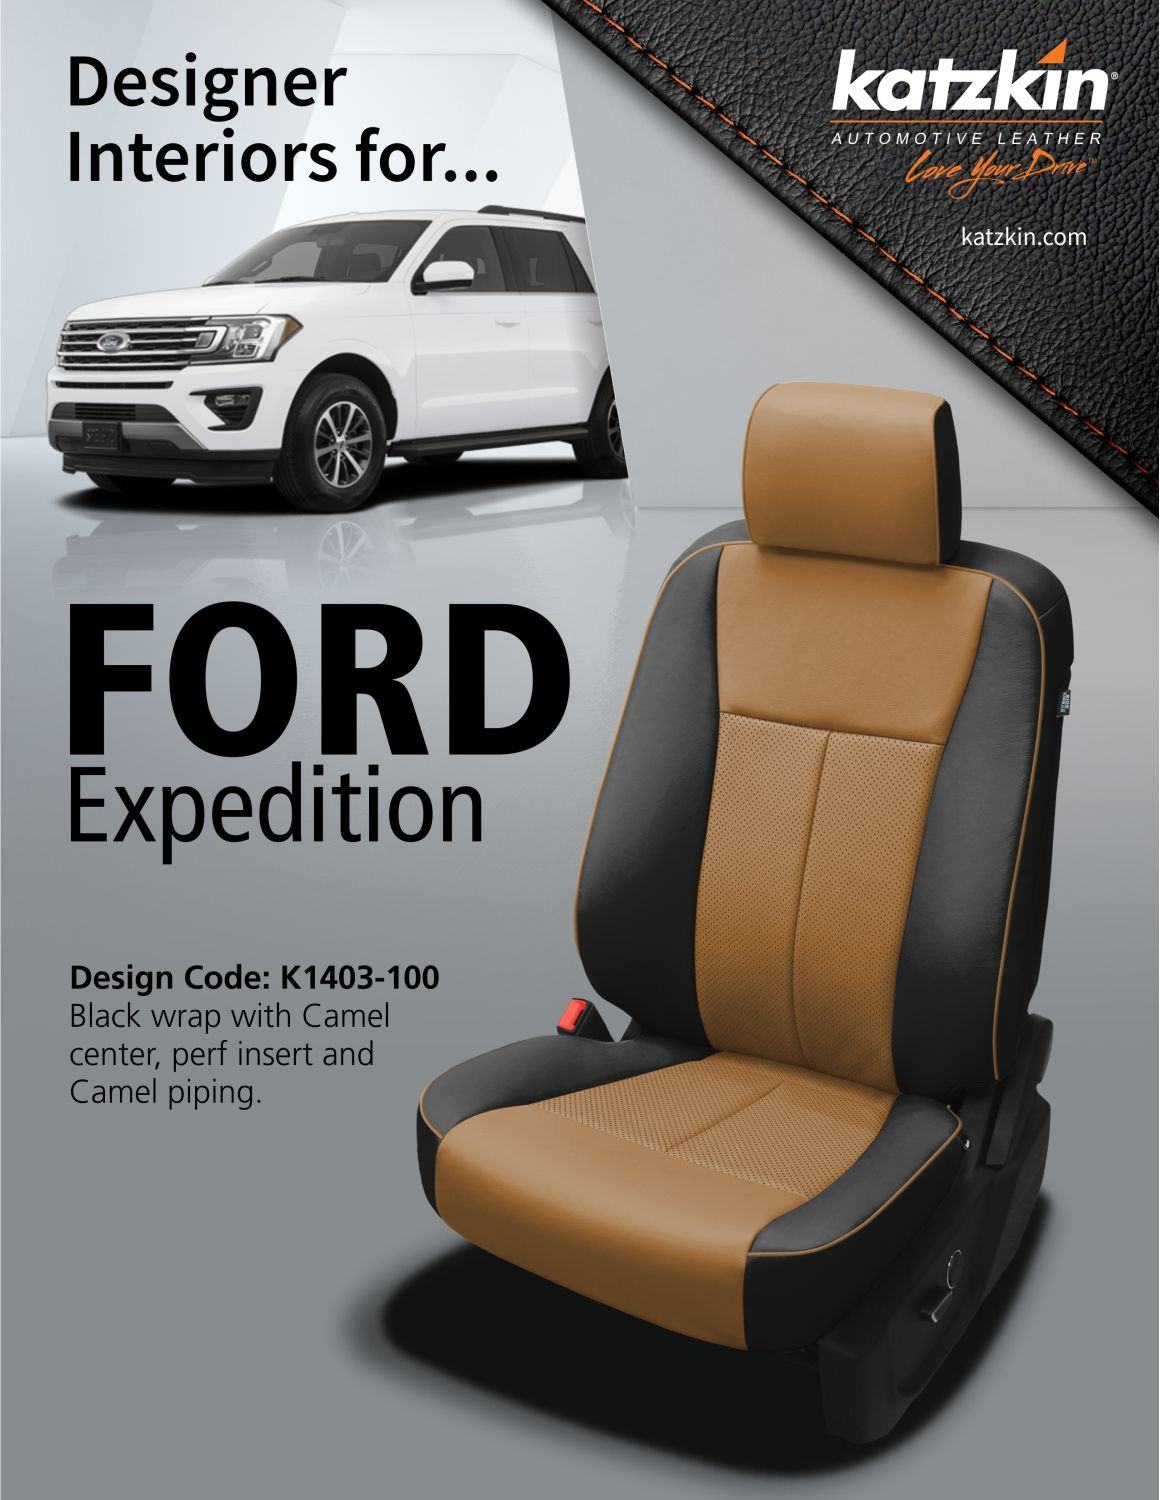 Ford Expedition (eBrochure)